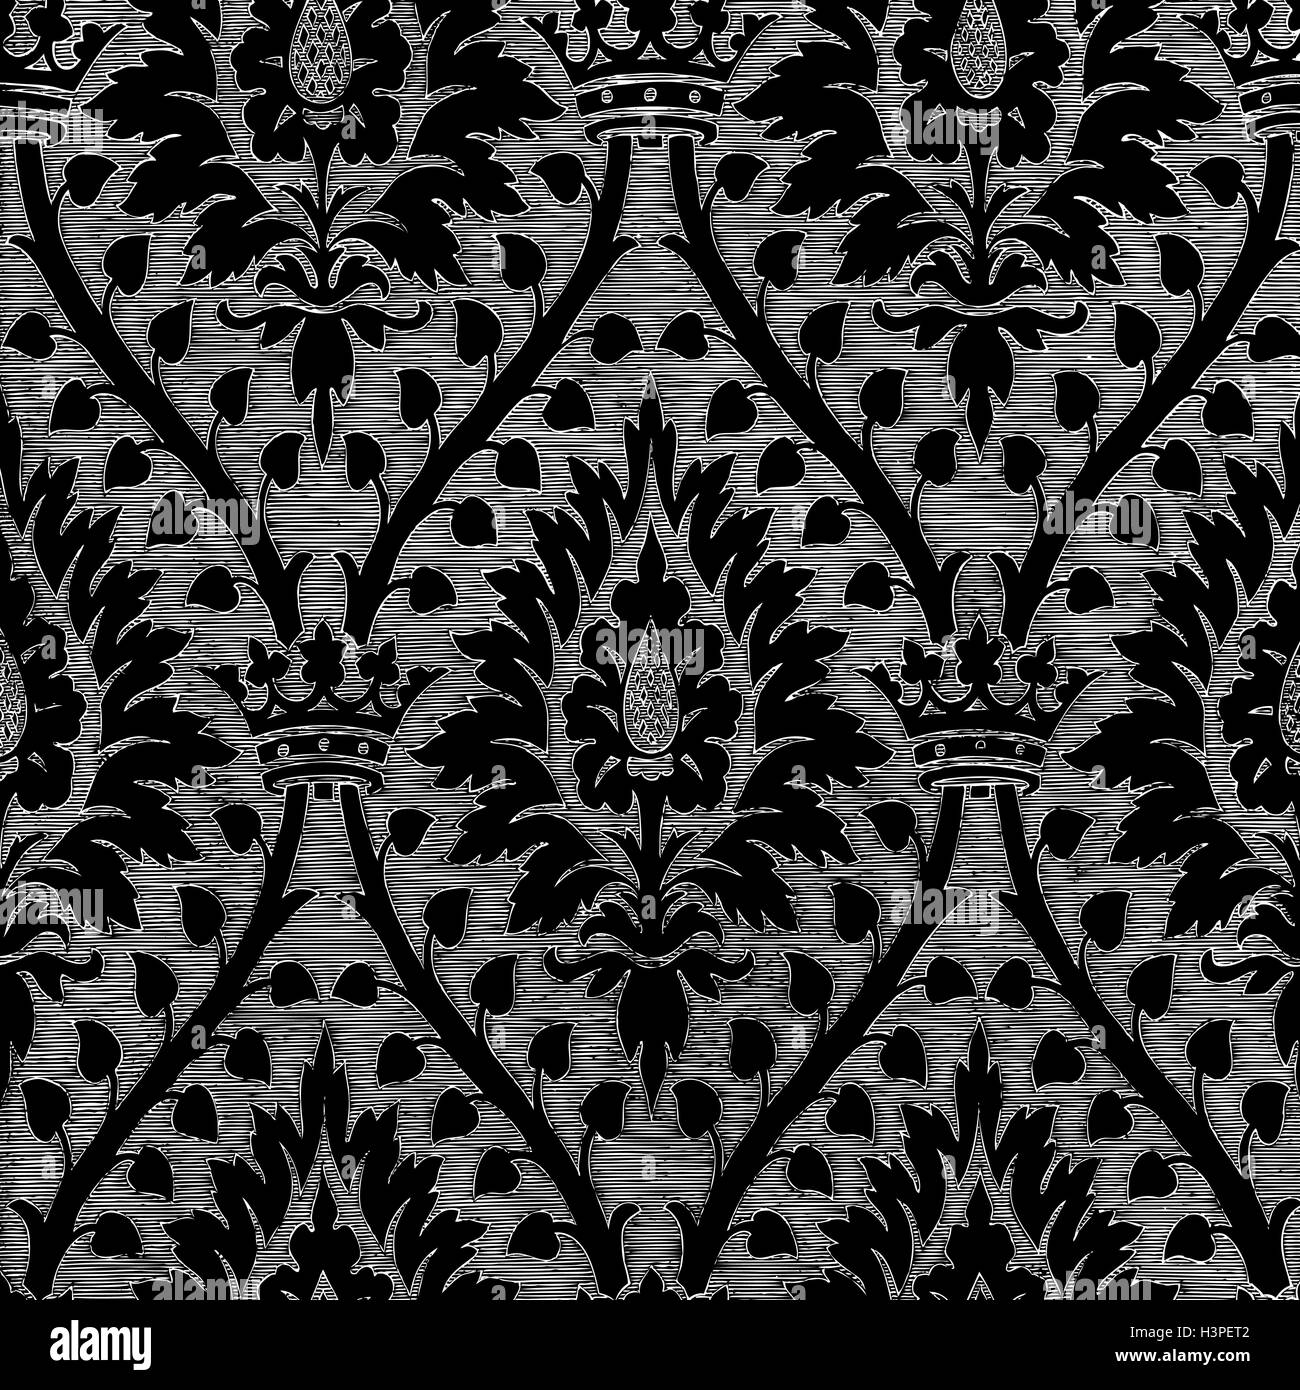 Vintage Metallregal Abstract Hand-drawn Floral Seamless Pattern With Crown, Vintage Stock Vector Image & Art - Alamy